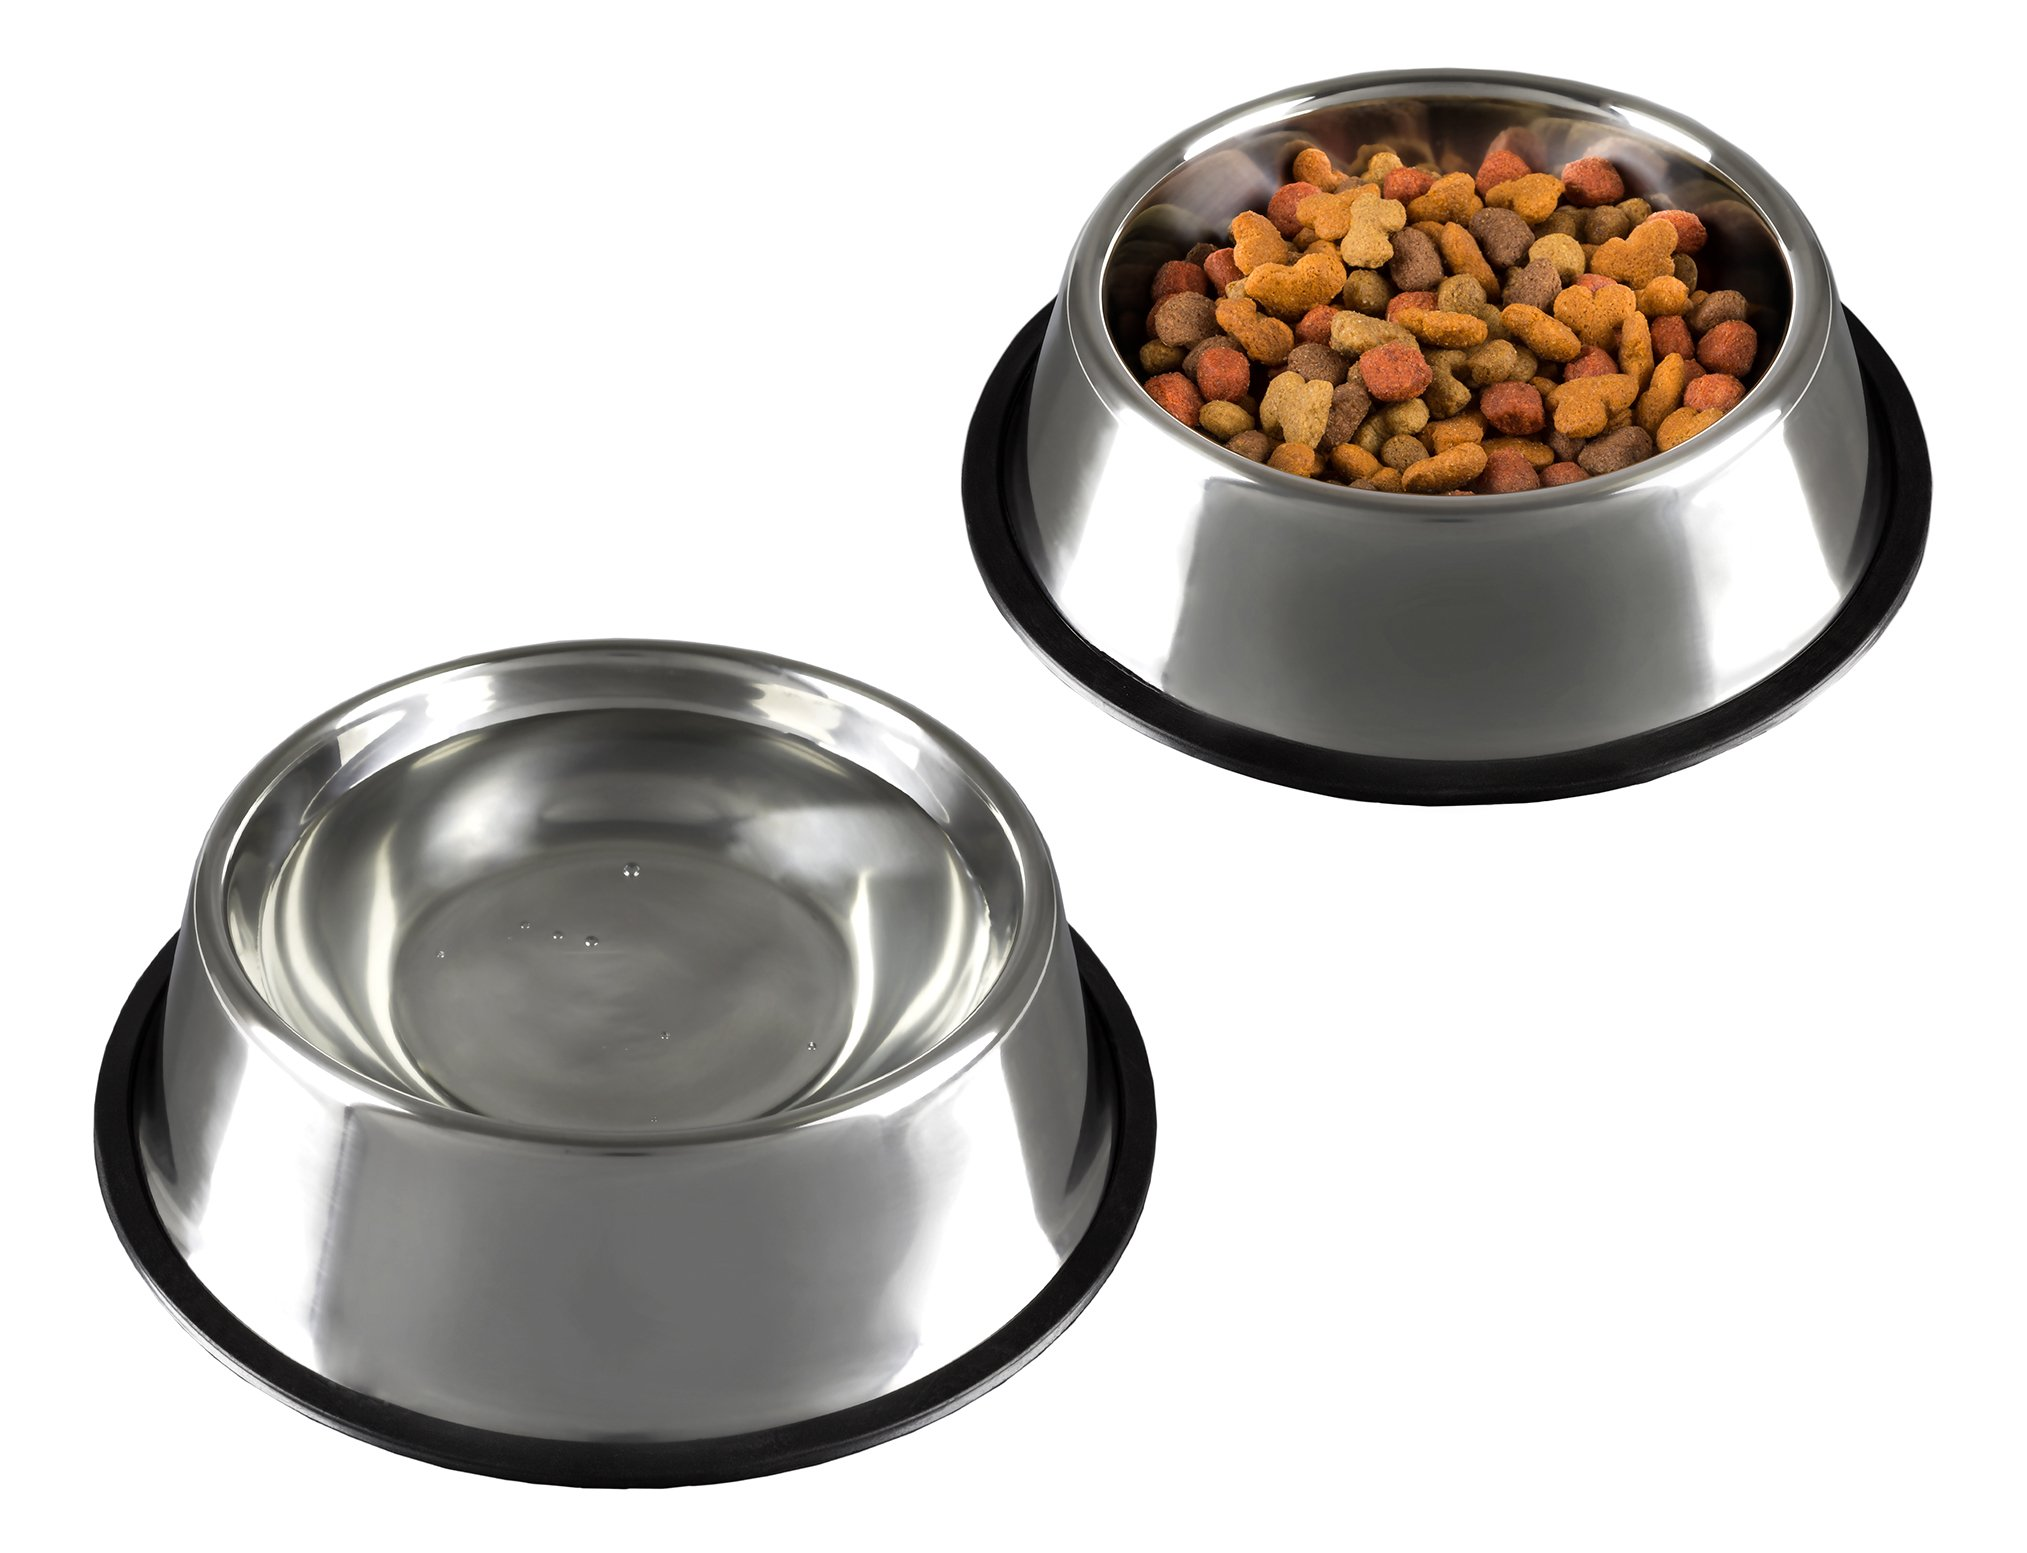 PETMAKER Stainless Steel Pet Bowls with Non Slip Rubber Bottom for Dogs and Cats-Feeder Dish for Food and Water- Set of 2, 16 Oz Each By